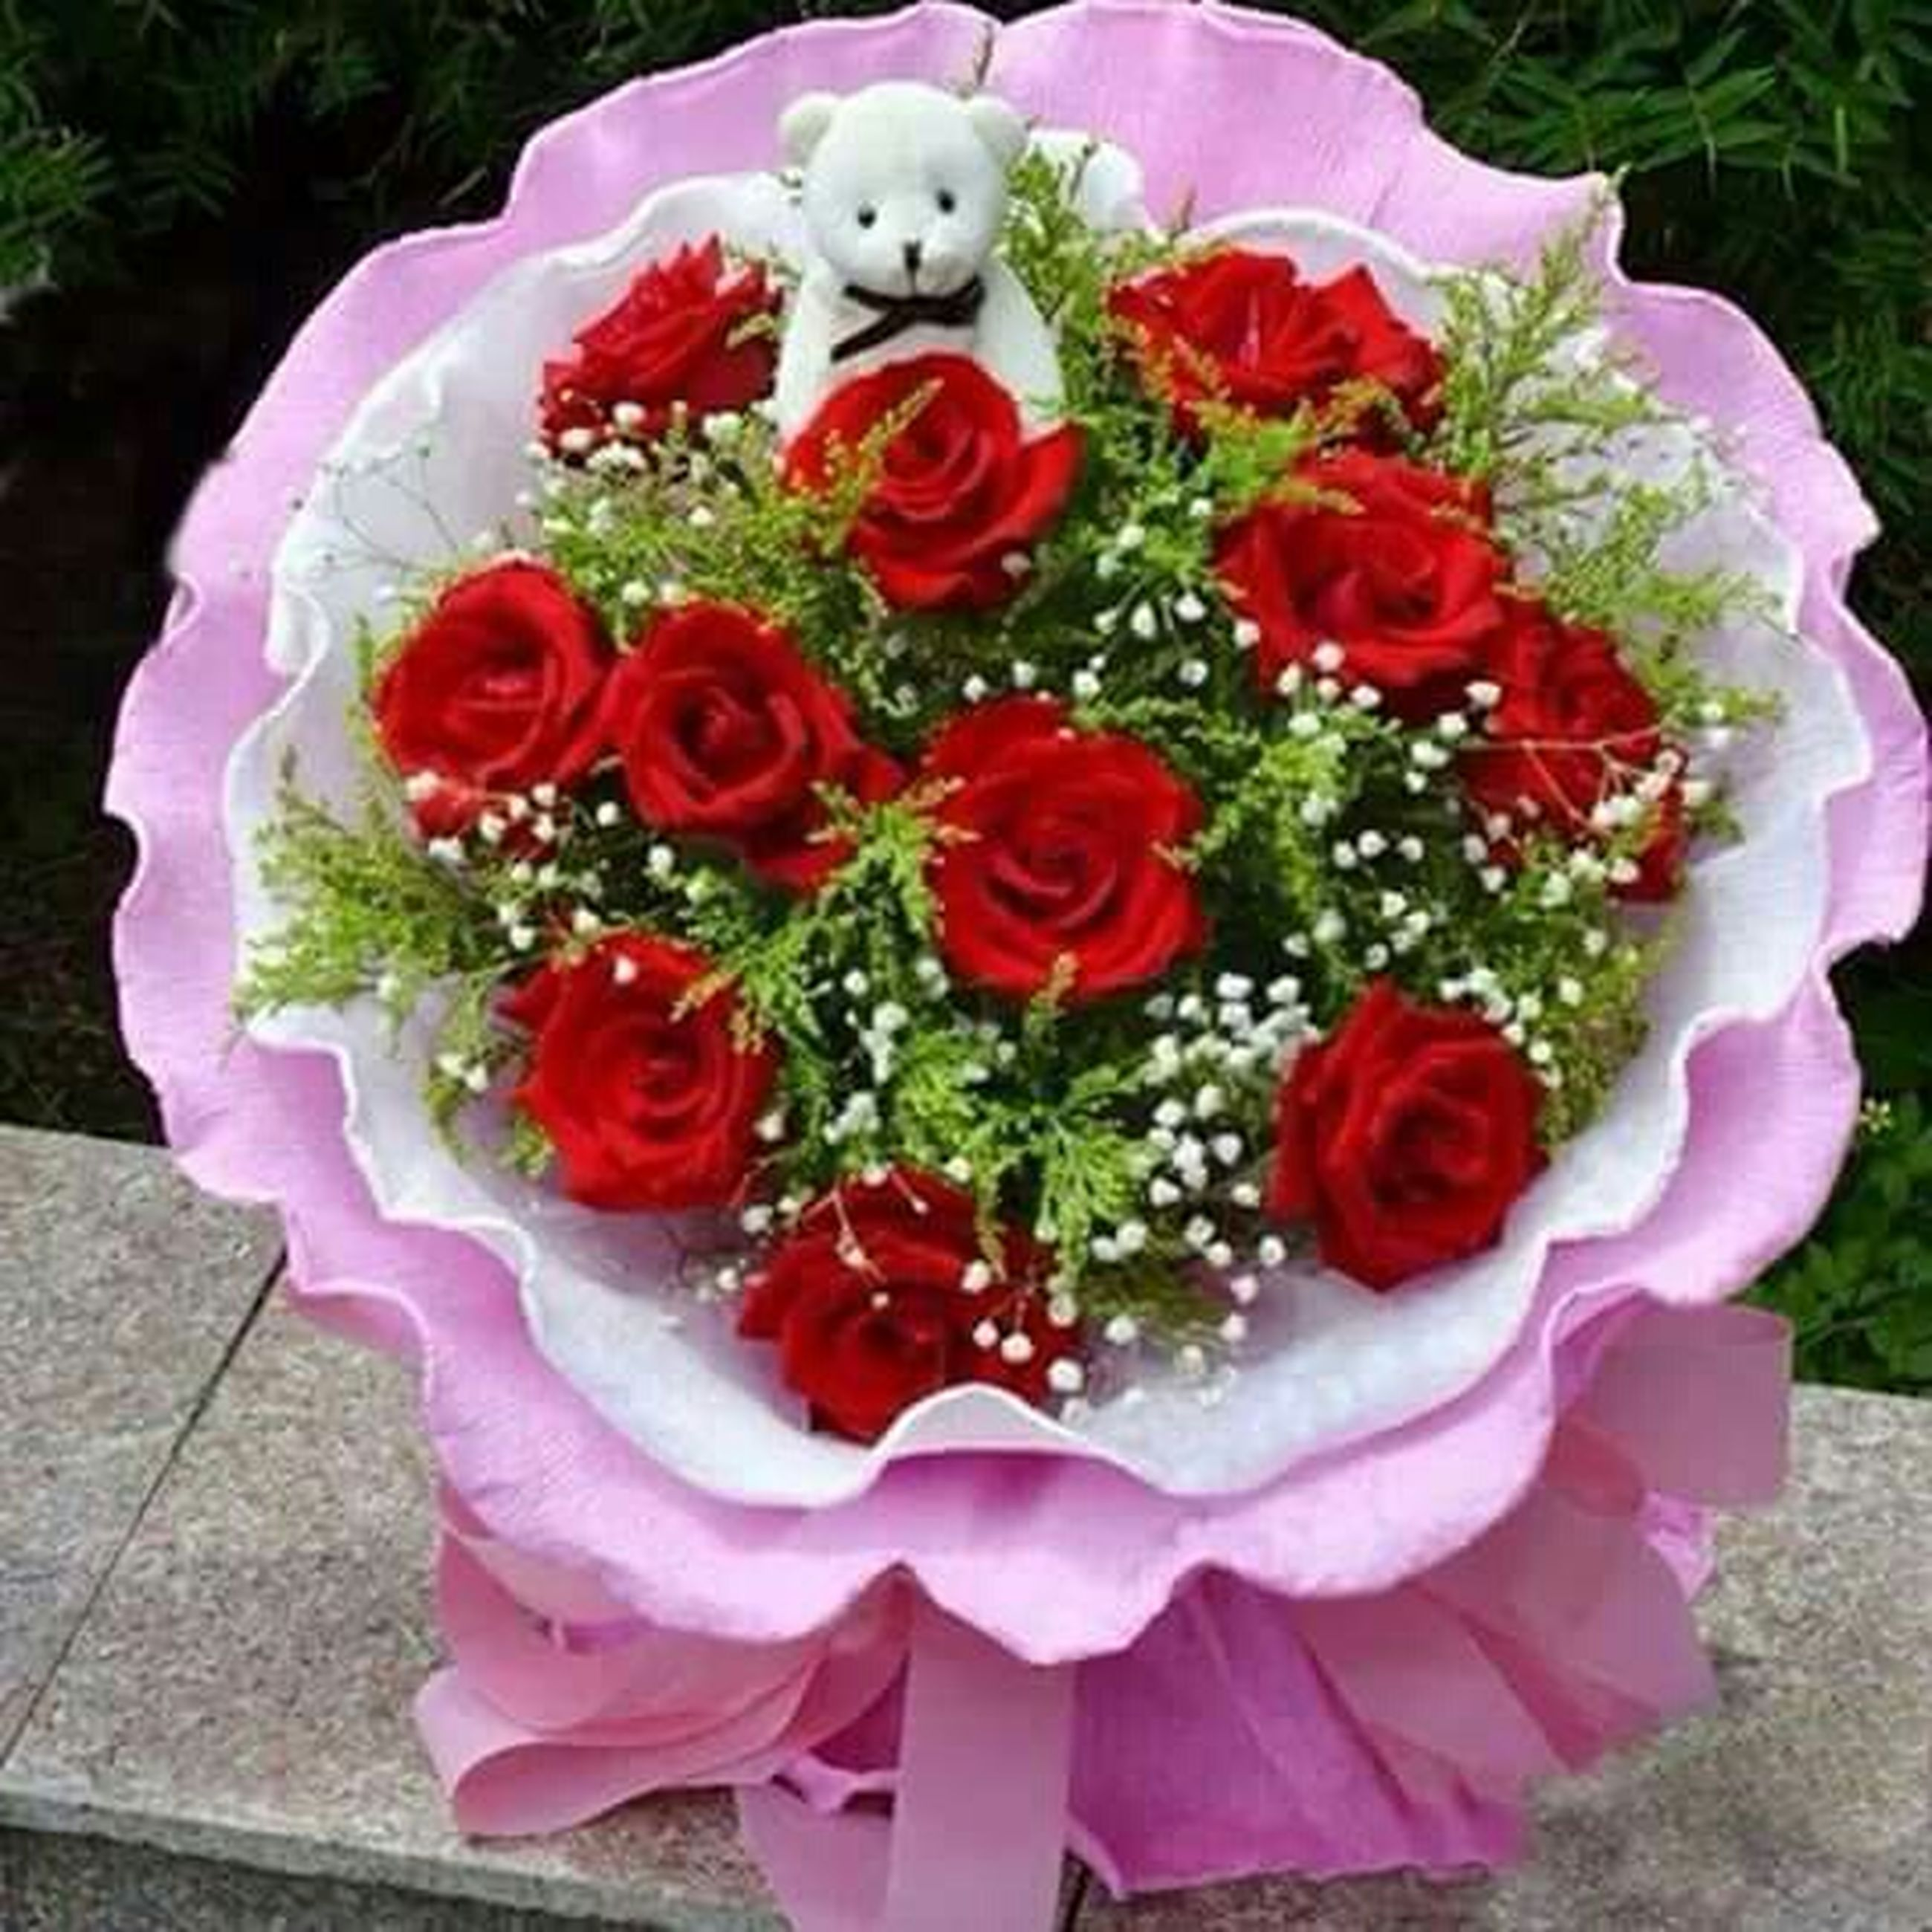 flower, petal, freshness, flower head, rose - flower, fragility, high angle view, beauty in nature, blooming, pink color, nature, growth, bouquet, rose, plant, close-up, no people, red, in bloom, outdoors